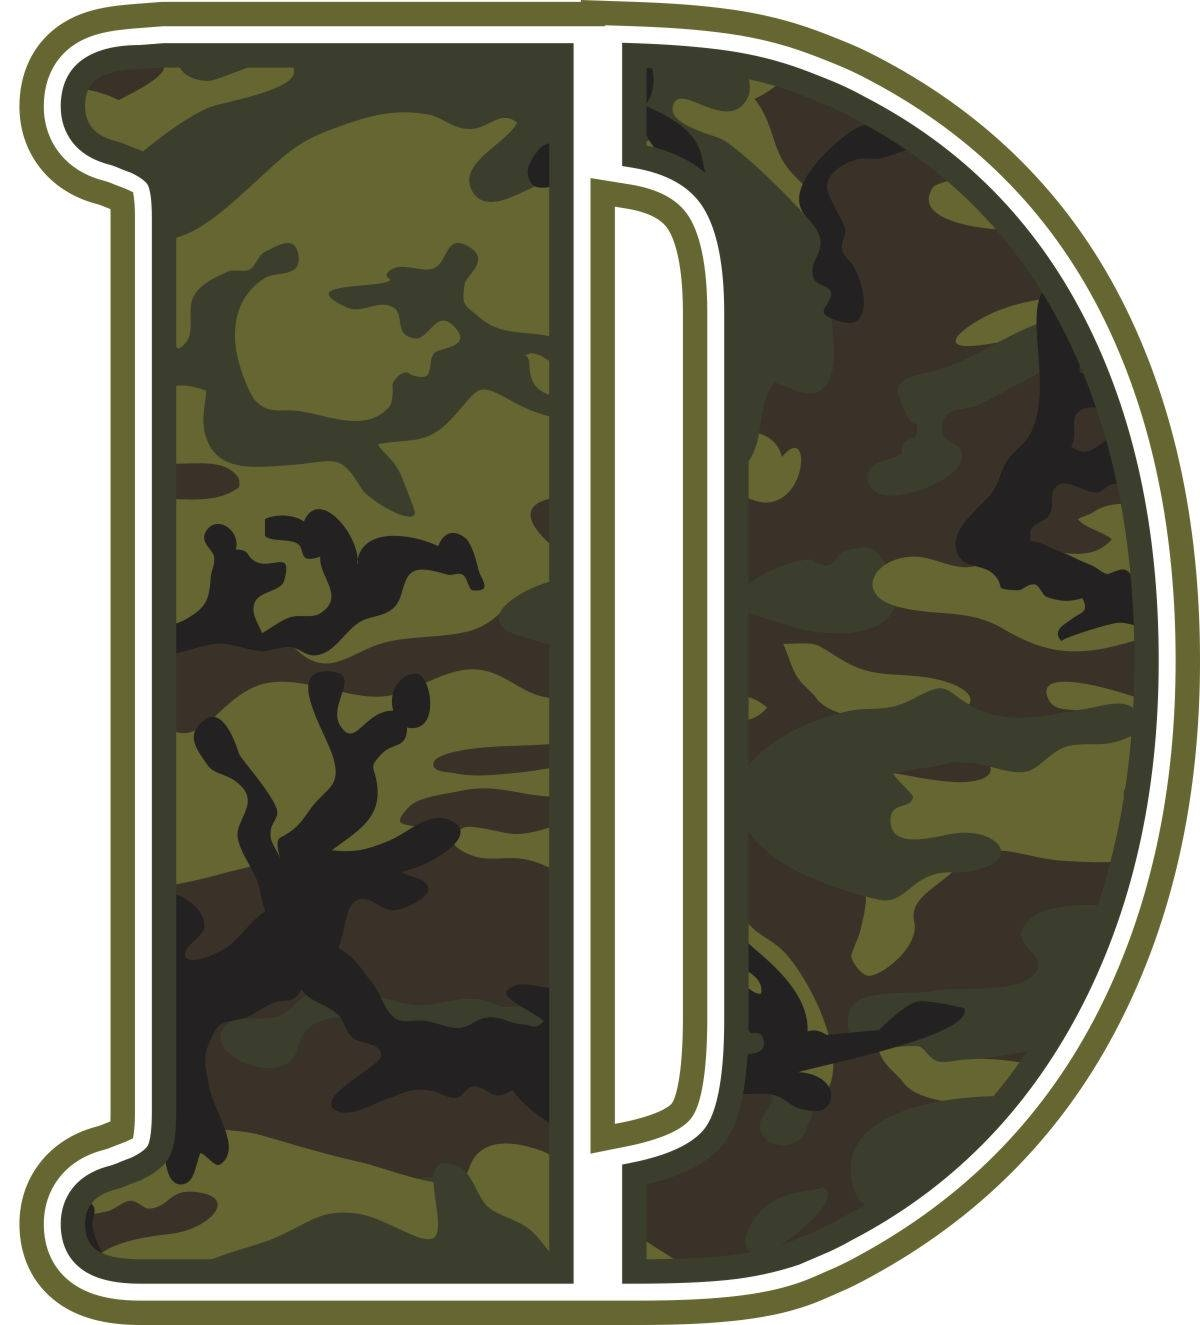 Green Camo Wall Letters | Potty Training Concepts In Most Up To Date Camouflage Wall Art (Gallery 20 of 20)